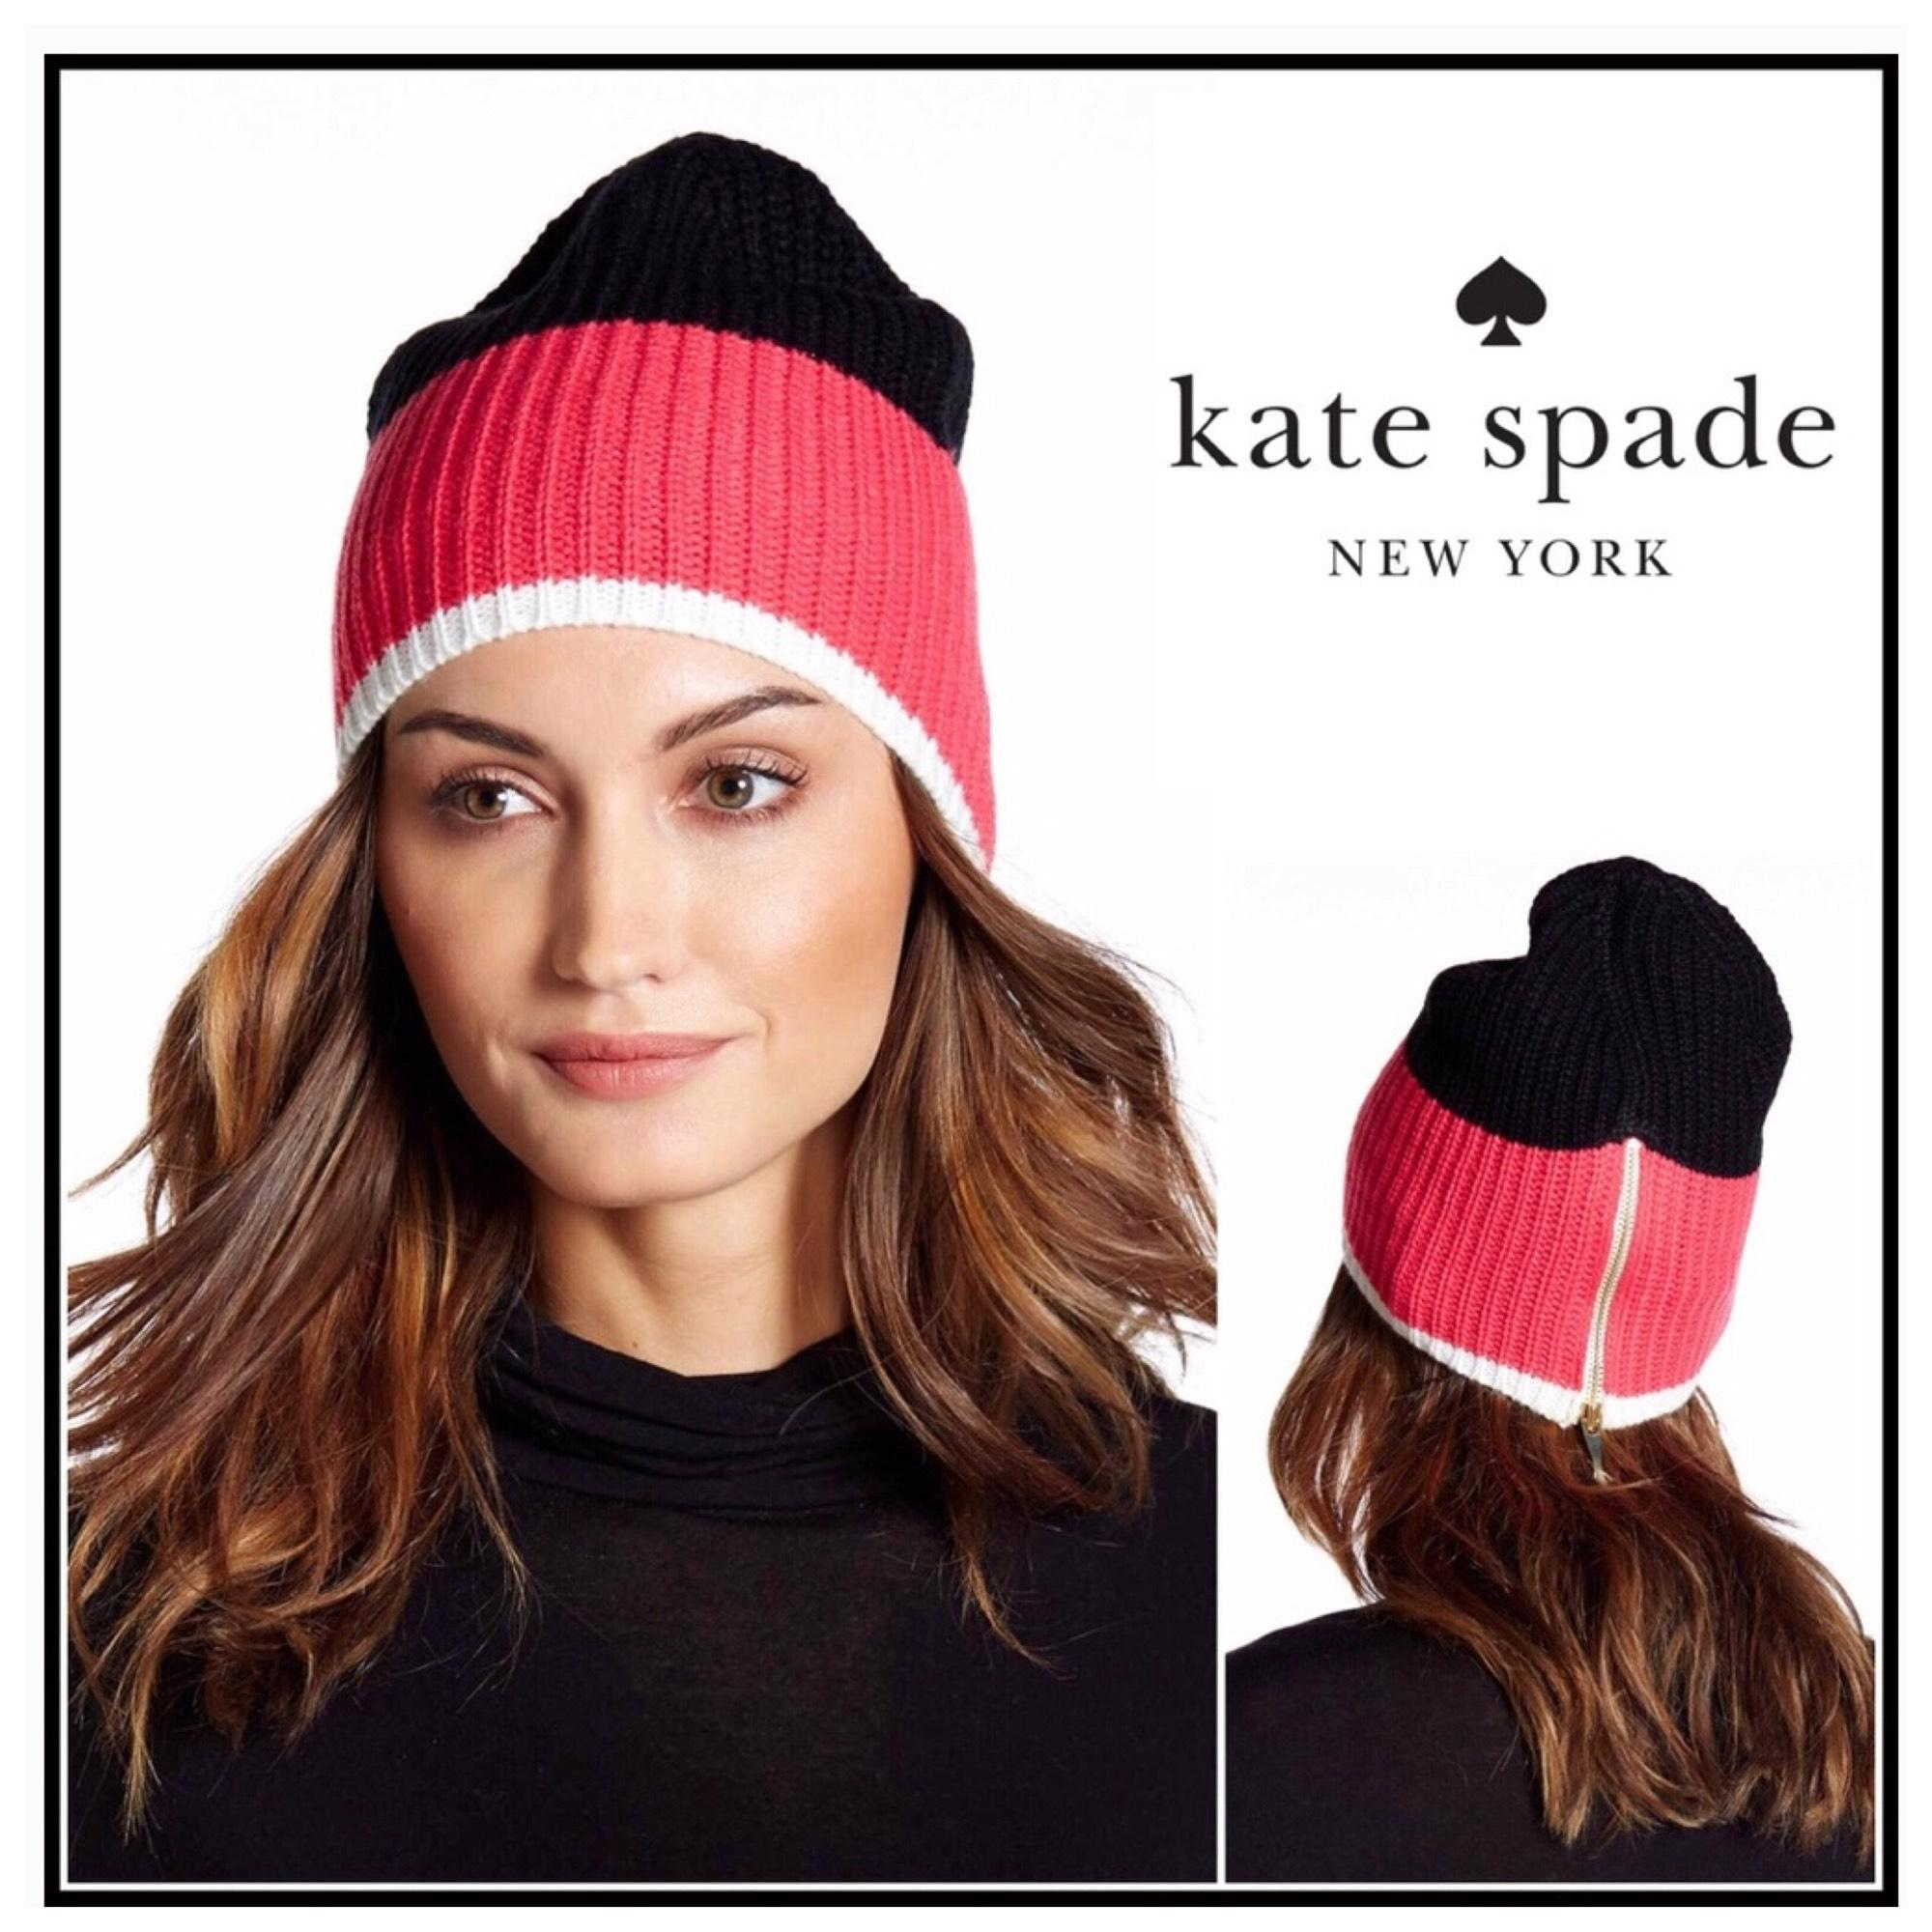 9c7d1b8df where can i buy veil hats kate spade 33894 4f50f